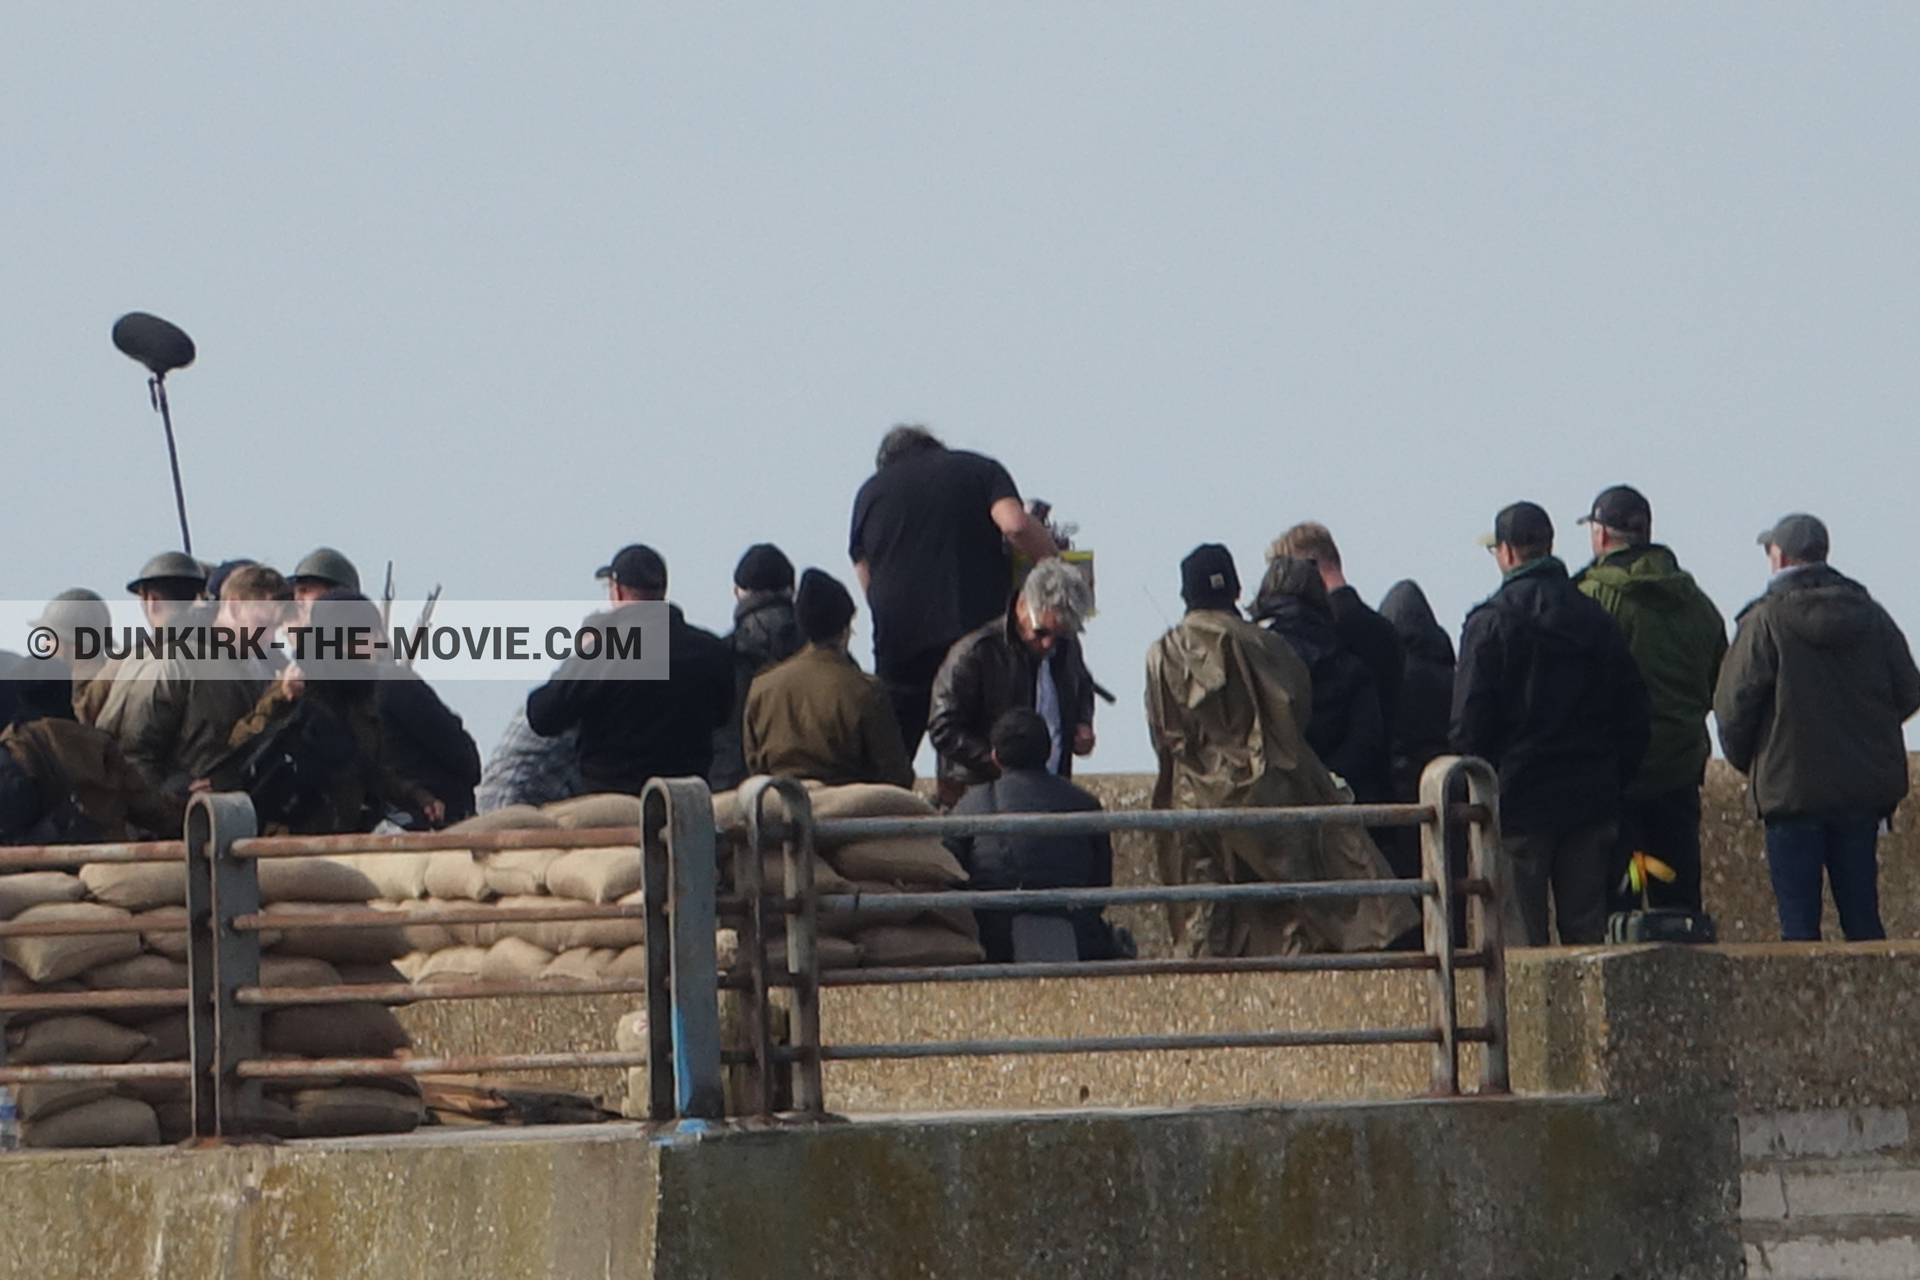 Picture with supernumeraries, EST pier, Nilo Otero,  from behind the scene of the Dunkirk movie by Nolan